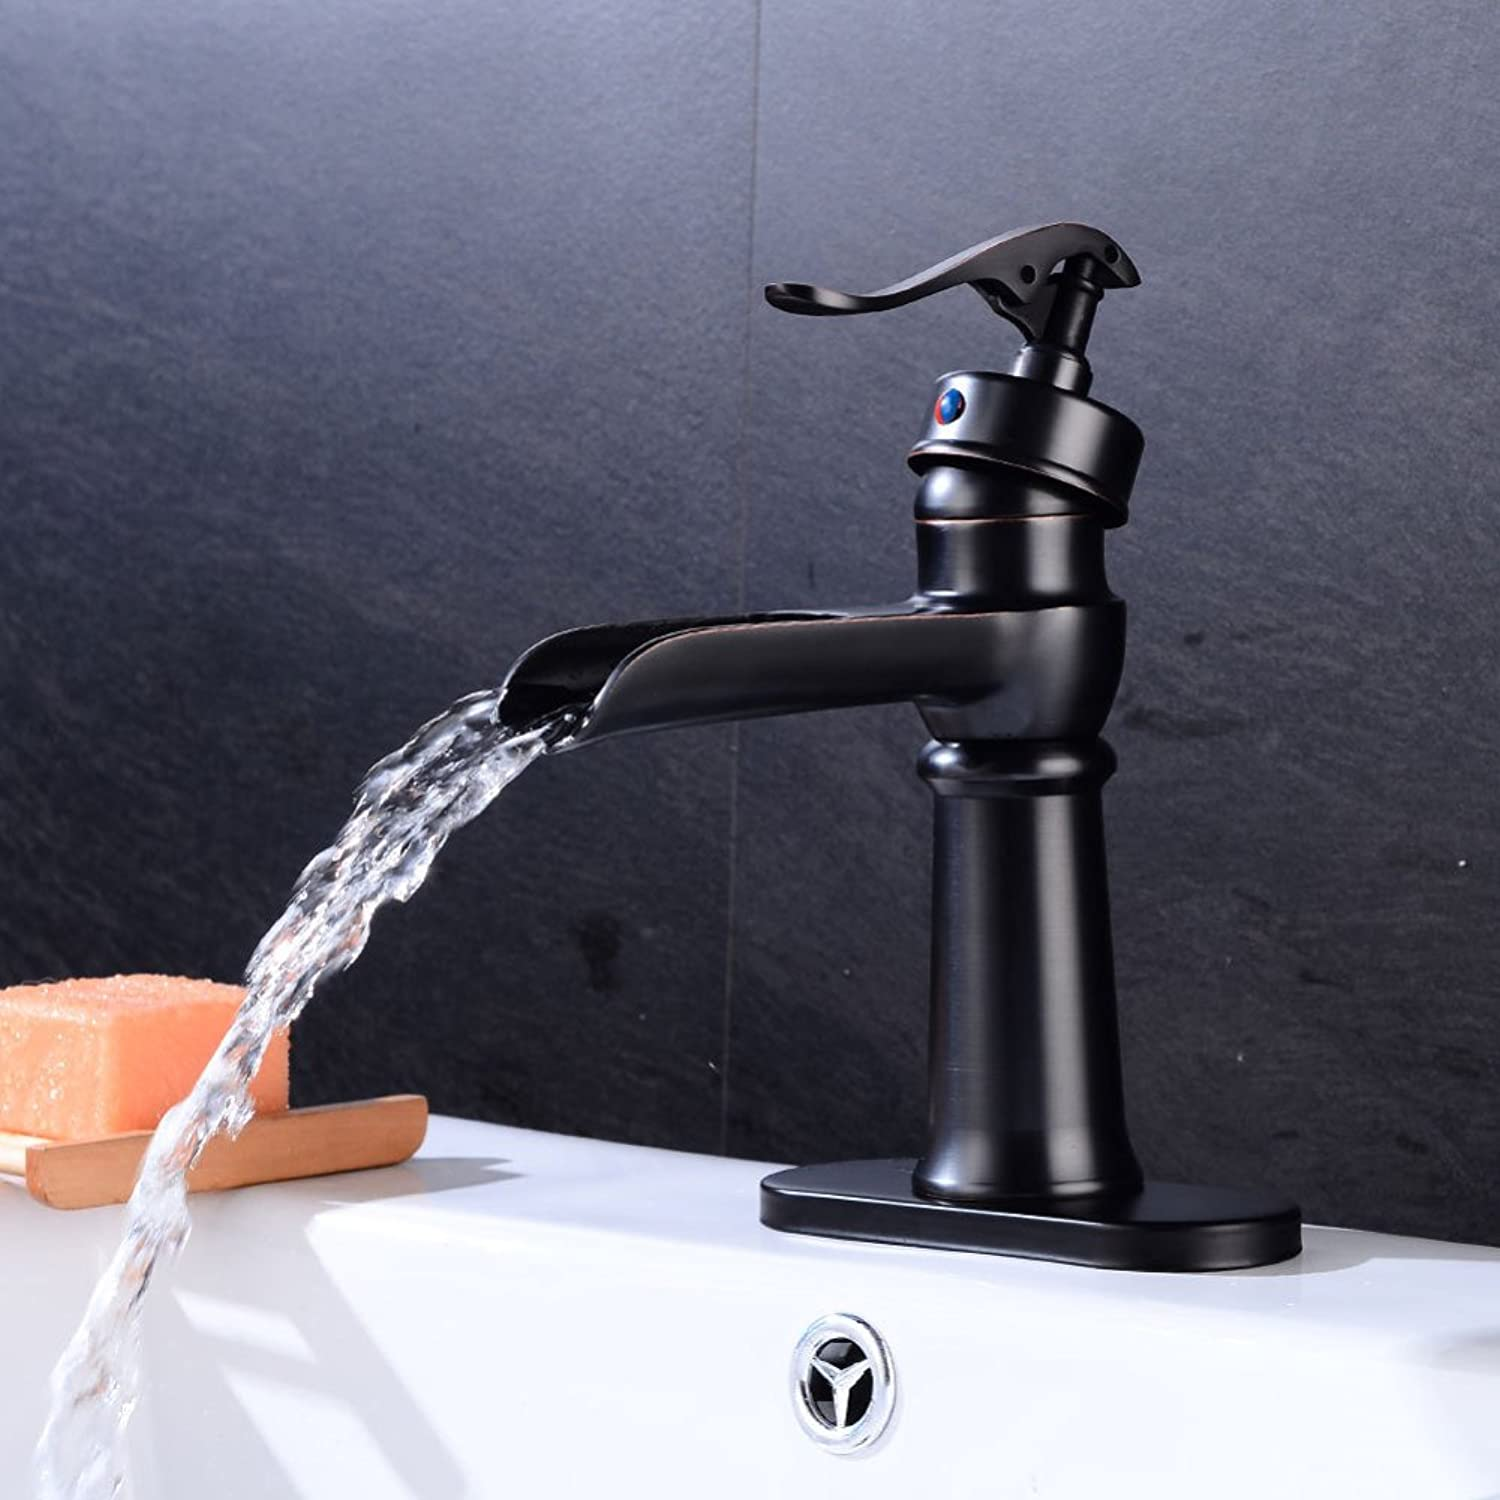 ZXY Bathroom Sink Taps European bathroom antique waterfall faucet single handle hot and cold mixed faucet single hole washbasin faucet